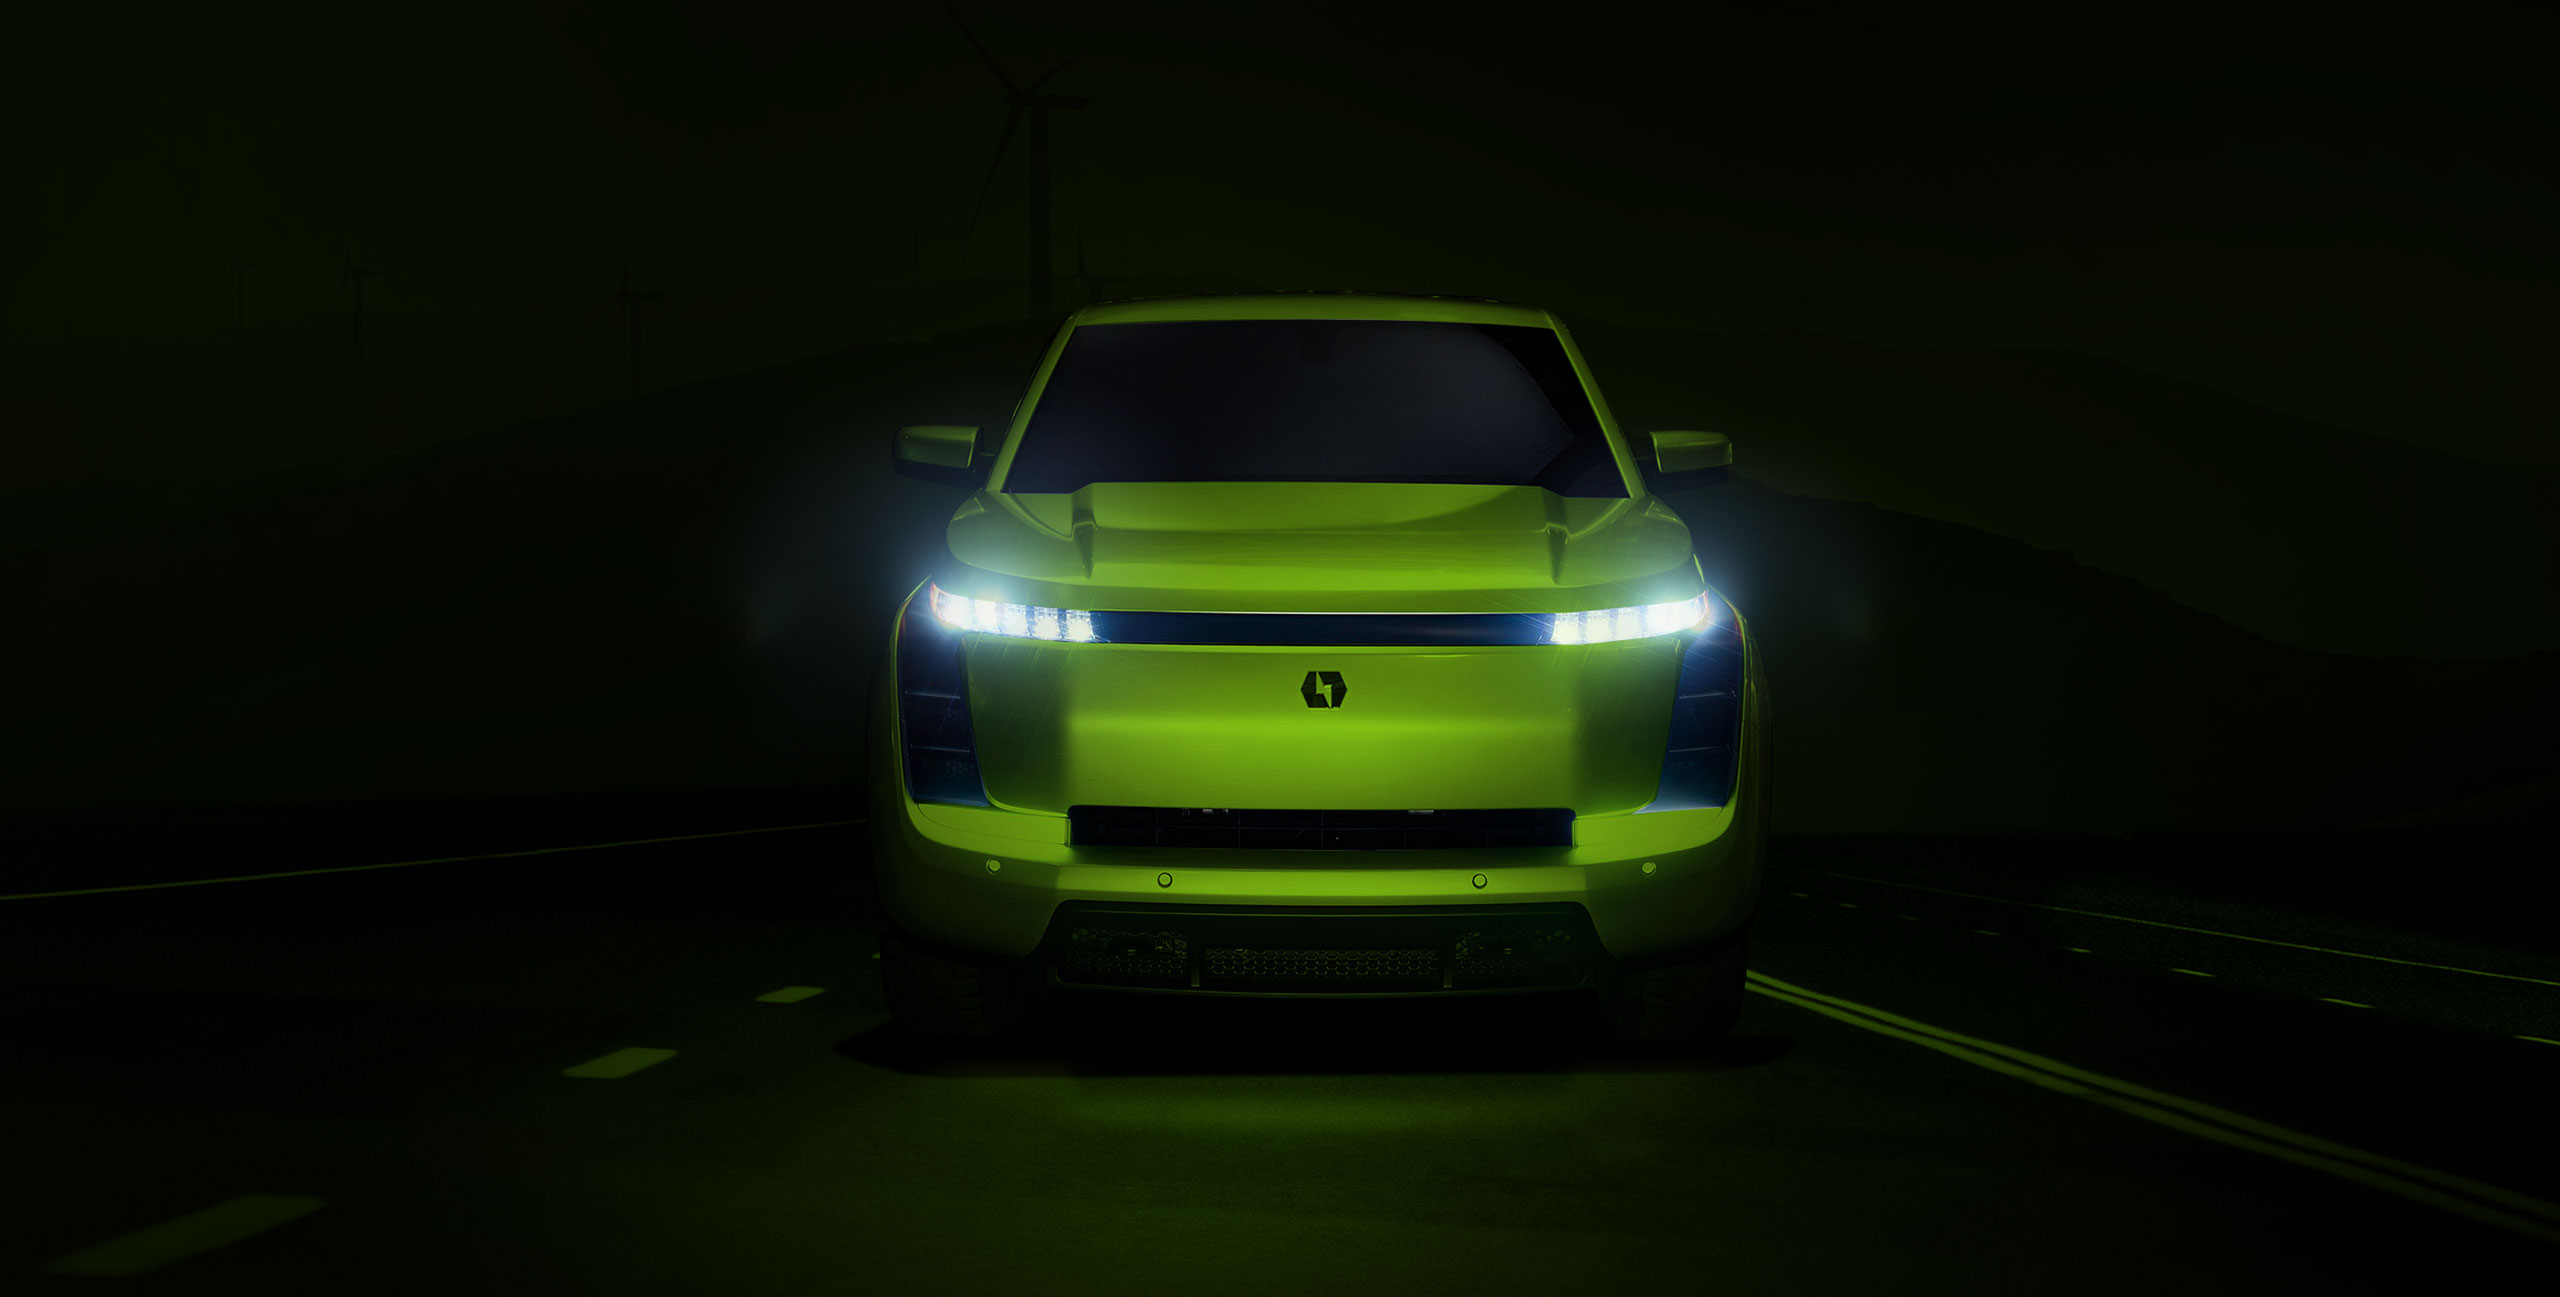 Green Lordstown electric pickup truck driving forward on road with headlights on